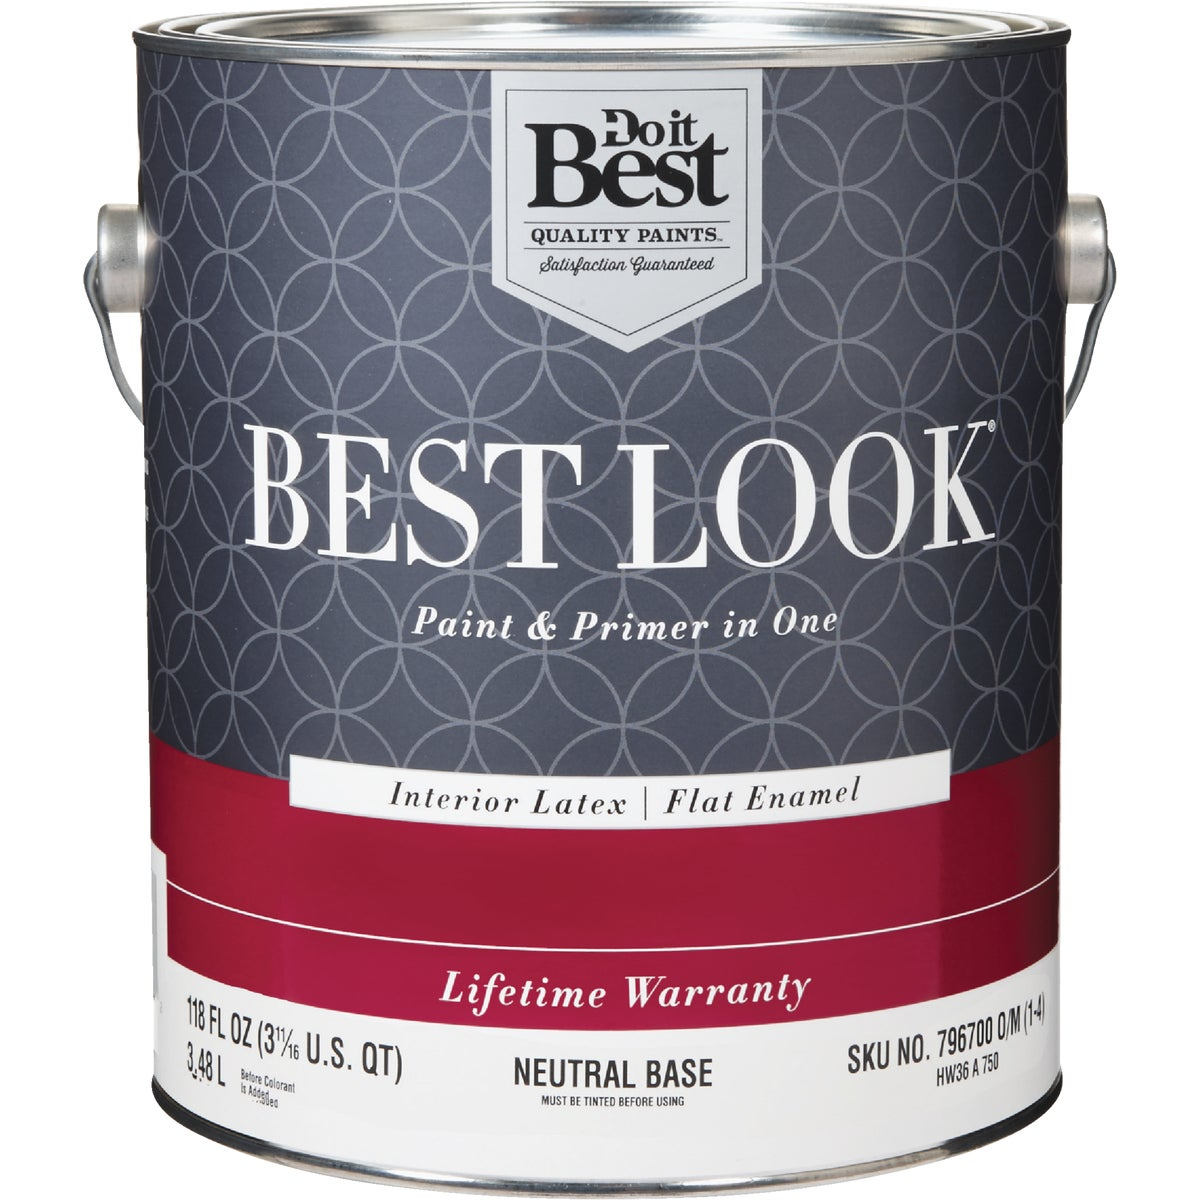 INT FLAT NEUTRL BS PAINT - HW36A0750-16 by Do it Best